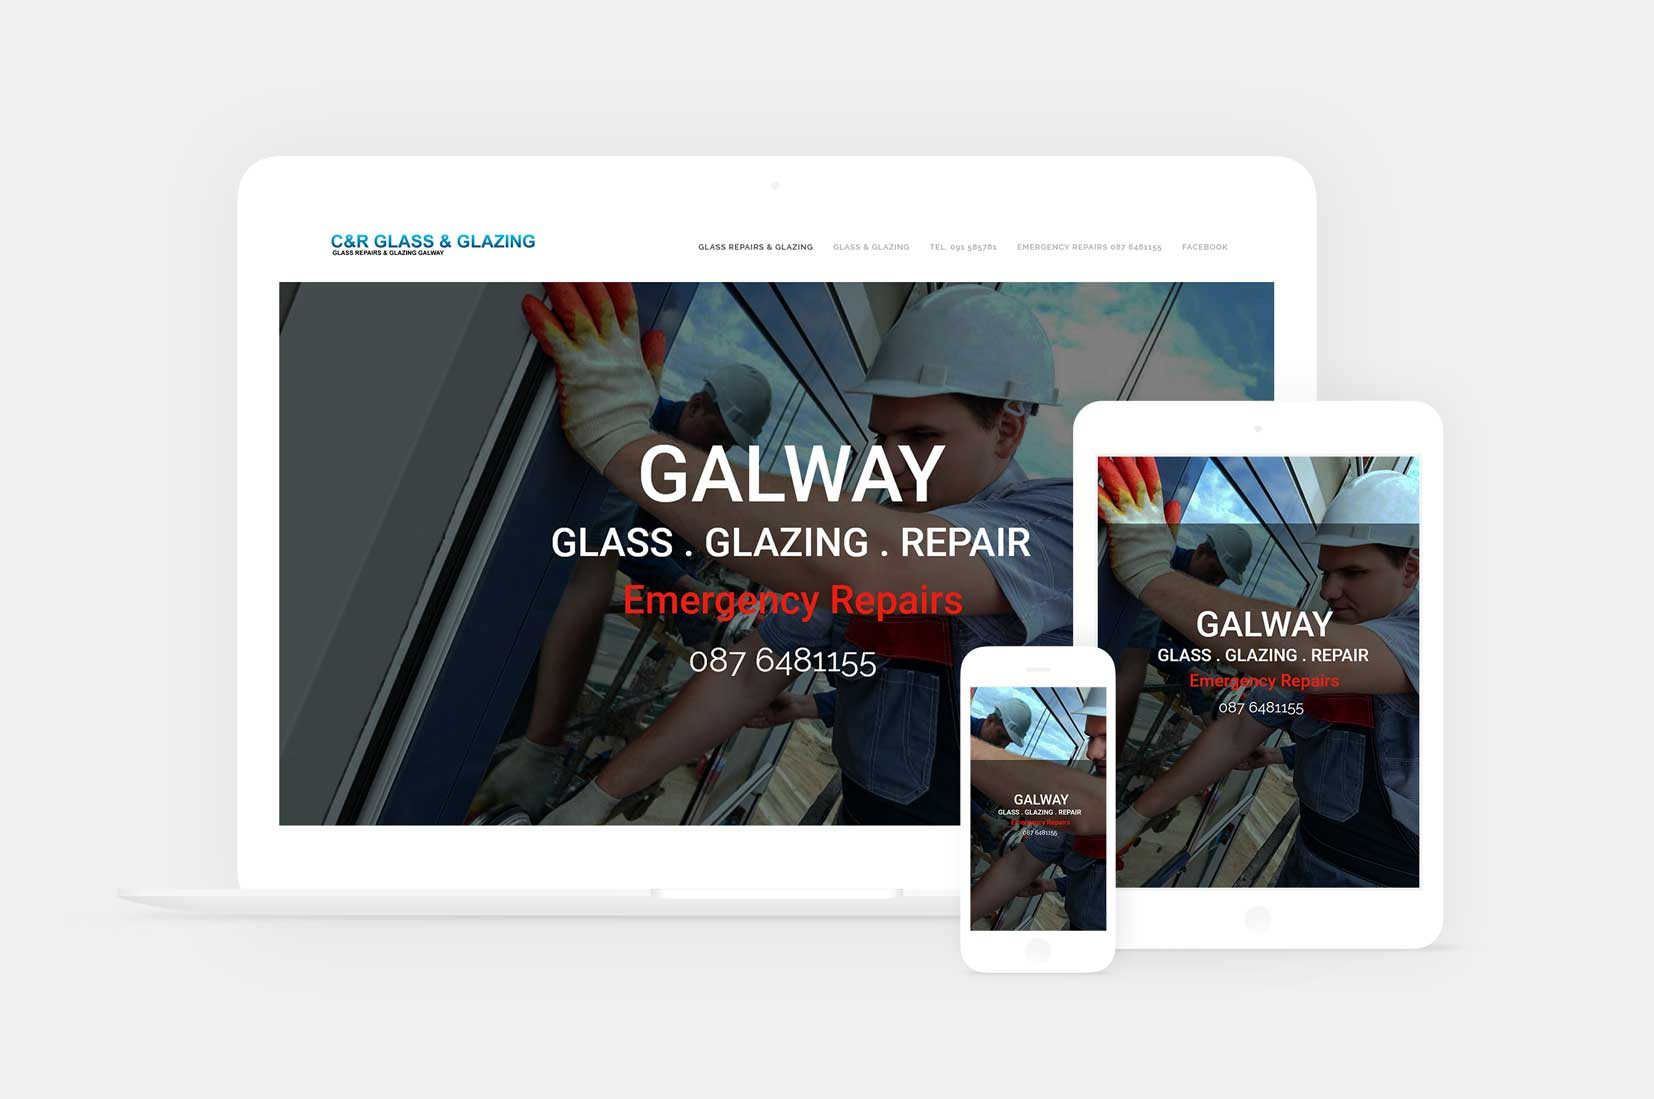 Website Design For Glass Galway